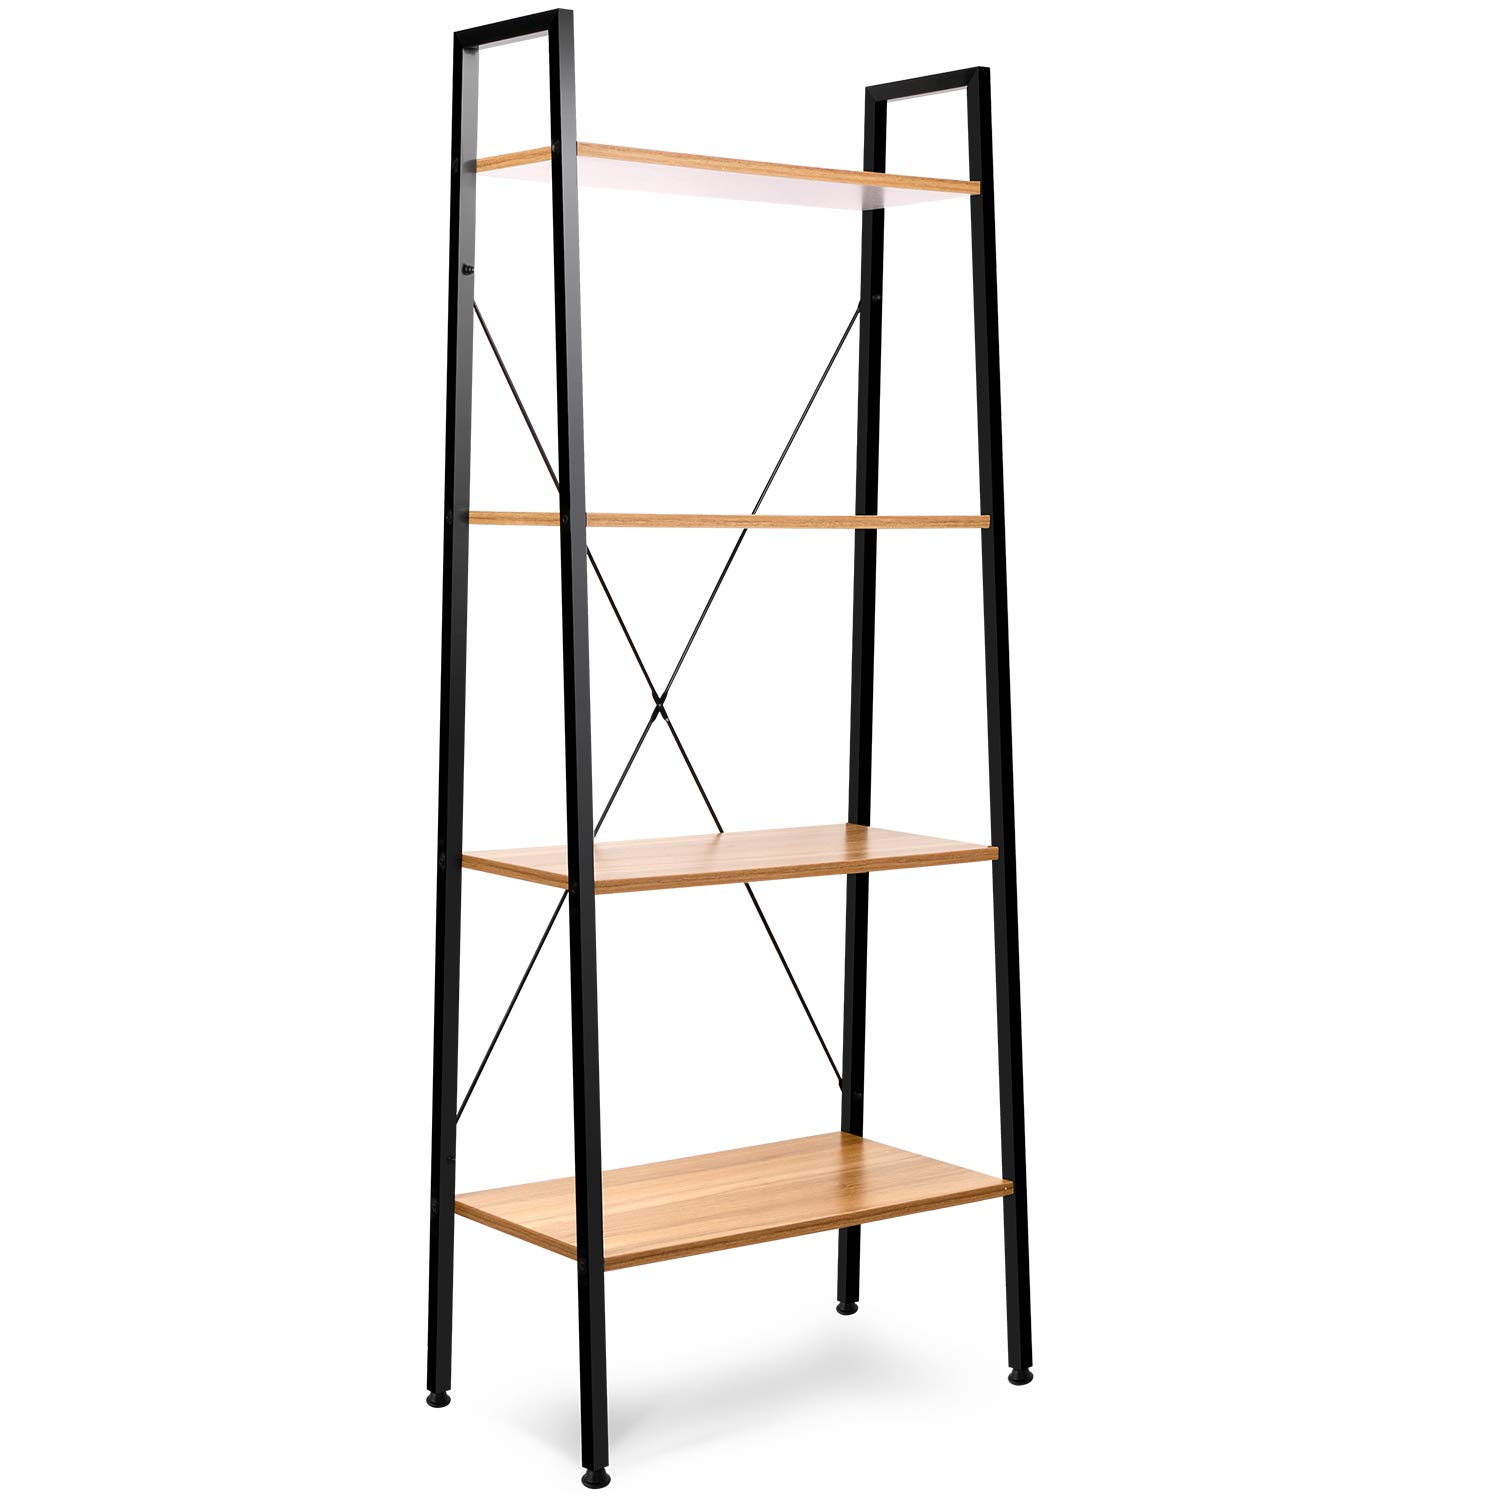 Leopard Ladder Shelf - Bookshelf - Multifunctional 4-Tier Ladder-Shaped Bookcase, Storage Rack Shelf, Bookrack Storage Shelves, Bathroom, Living Room (Nordic Walnut) by Leopard Outdoor Products